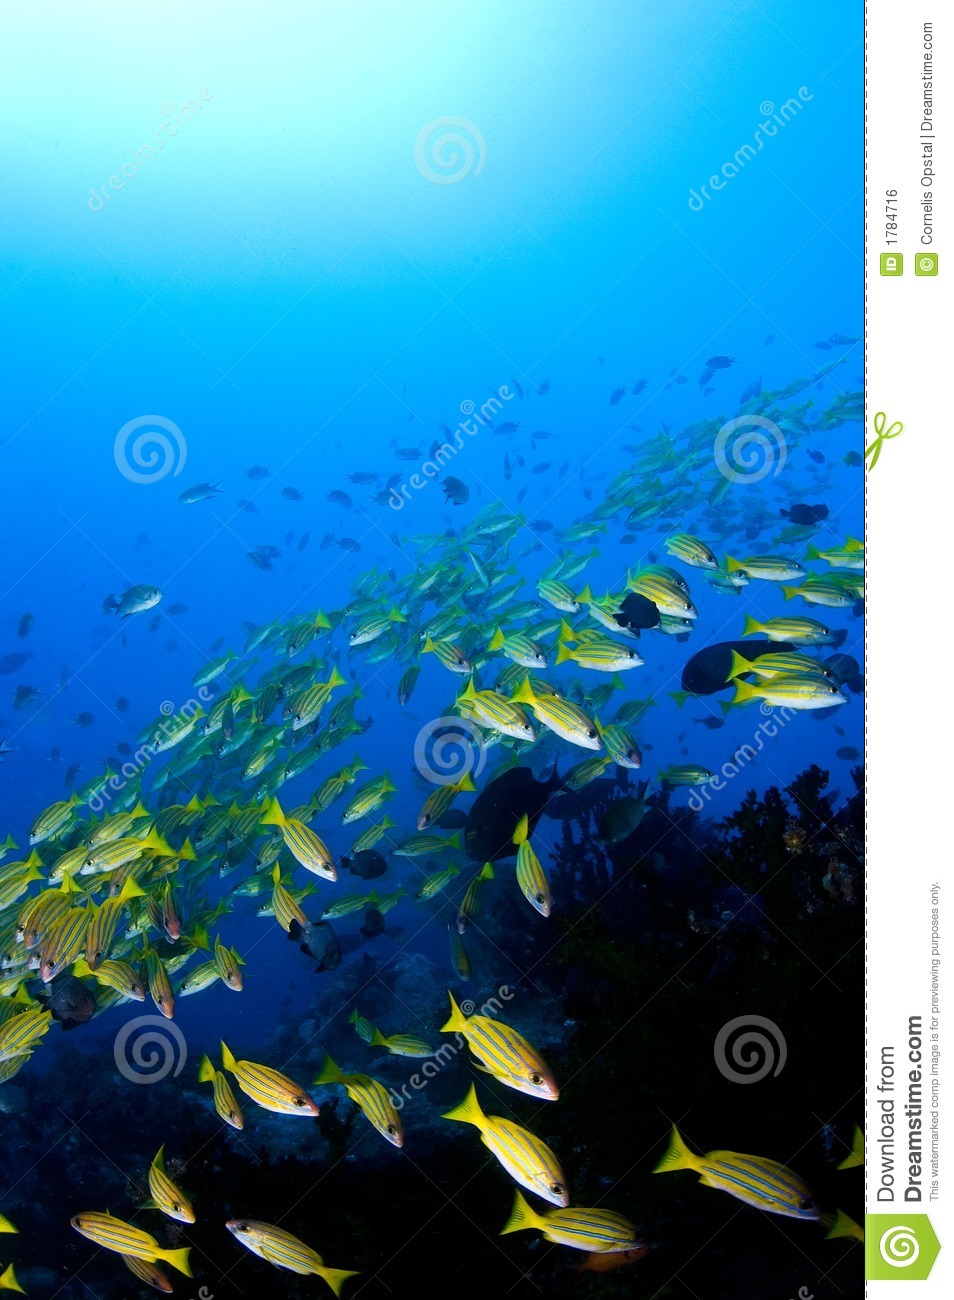 School of yellow snappers over reef.